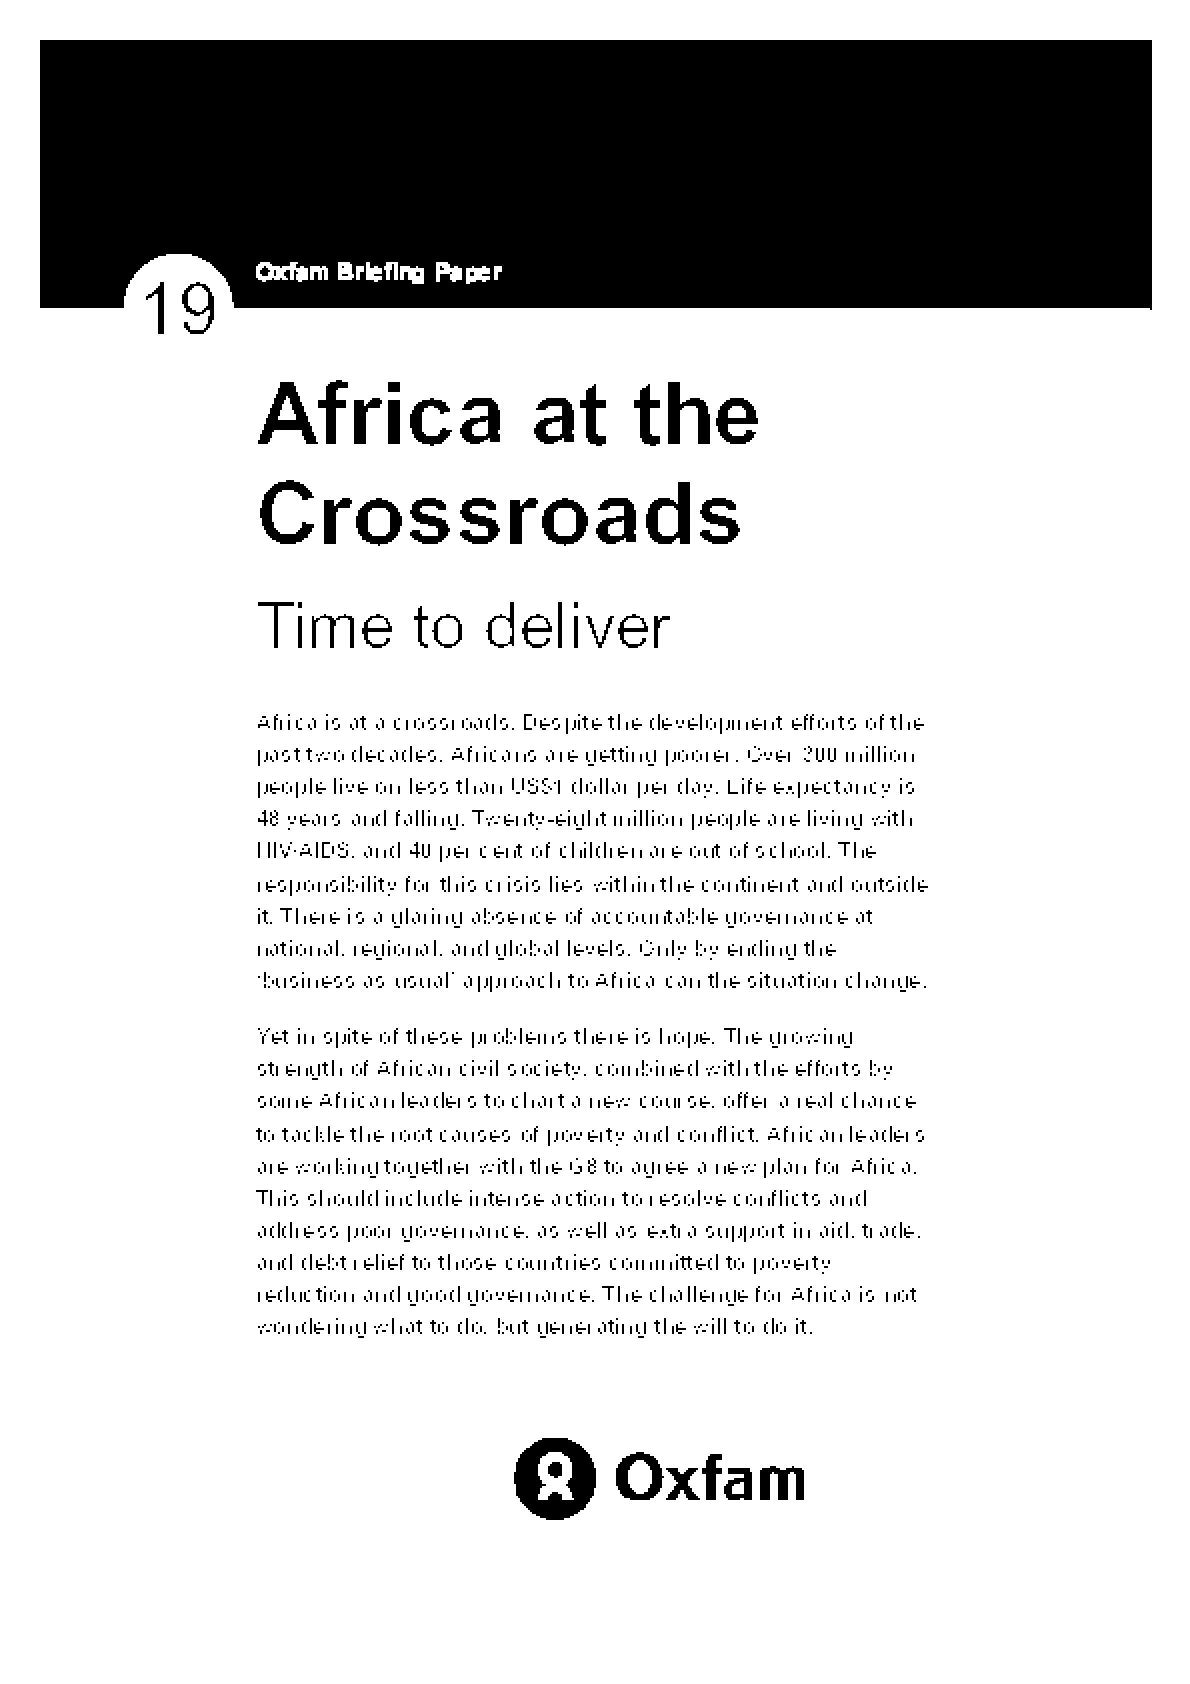 Africa at the Crossroads: Time to deliver